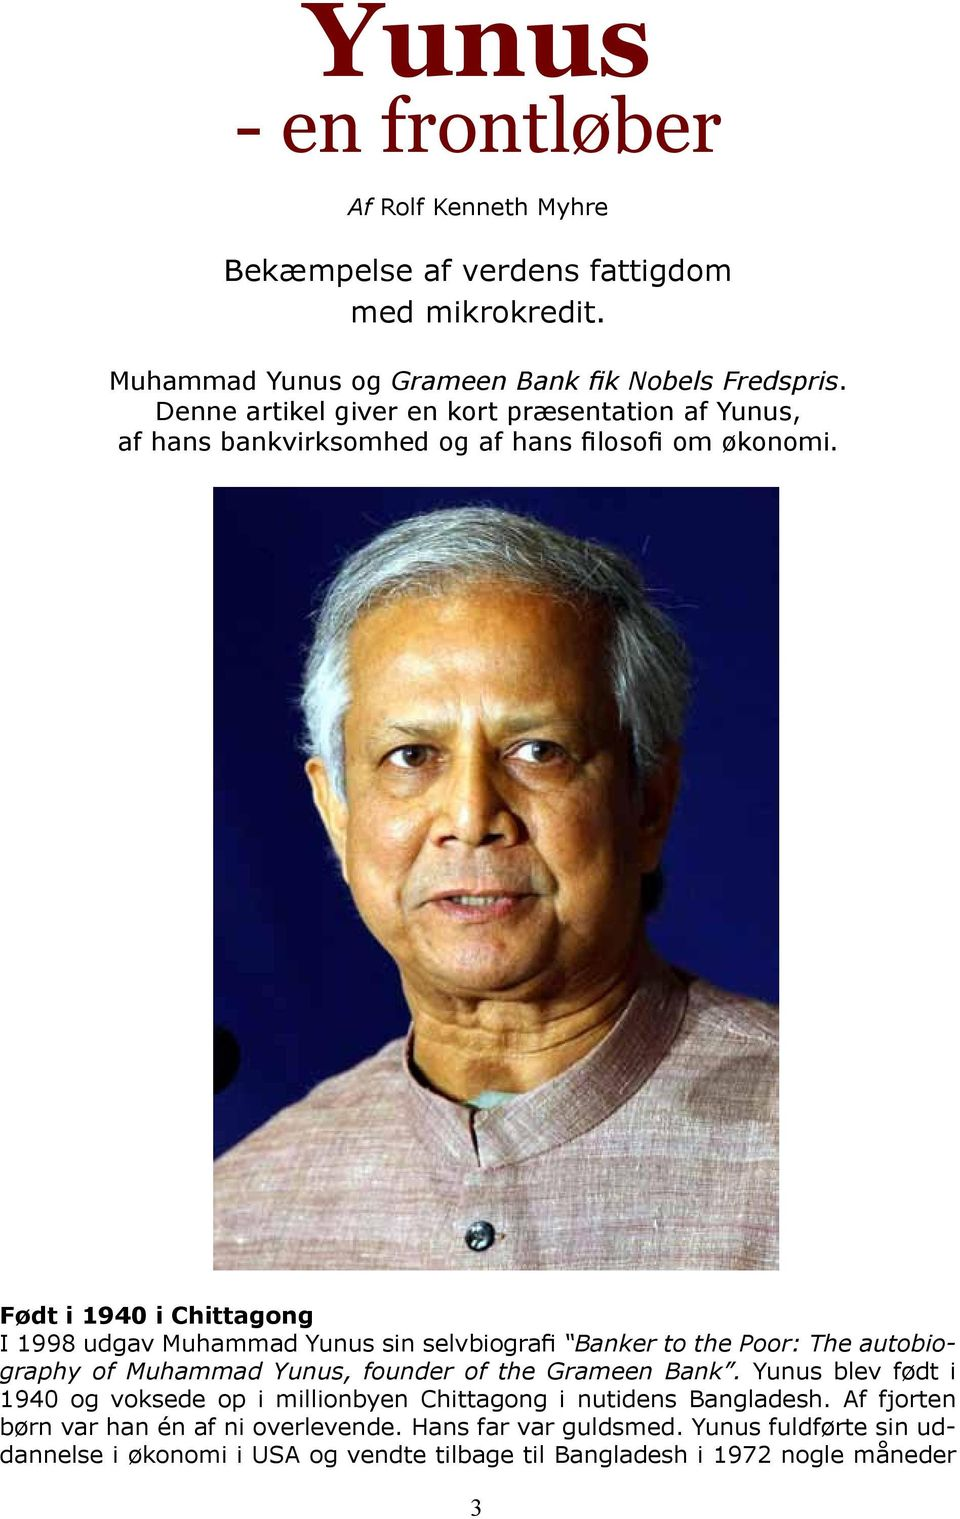 Født i 1940 i Chittagong I 1998 udgav Muhammad Yunus sin selvbiografi Banker to the Poor: The autobiography of Muhammad Yunus, founder of the Grameen Bank.